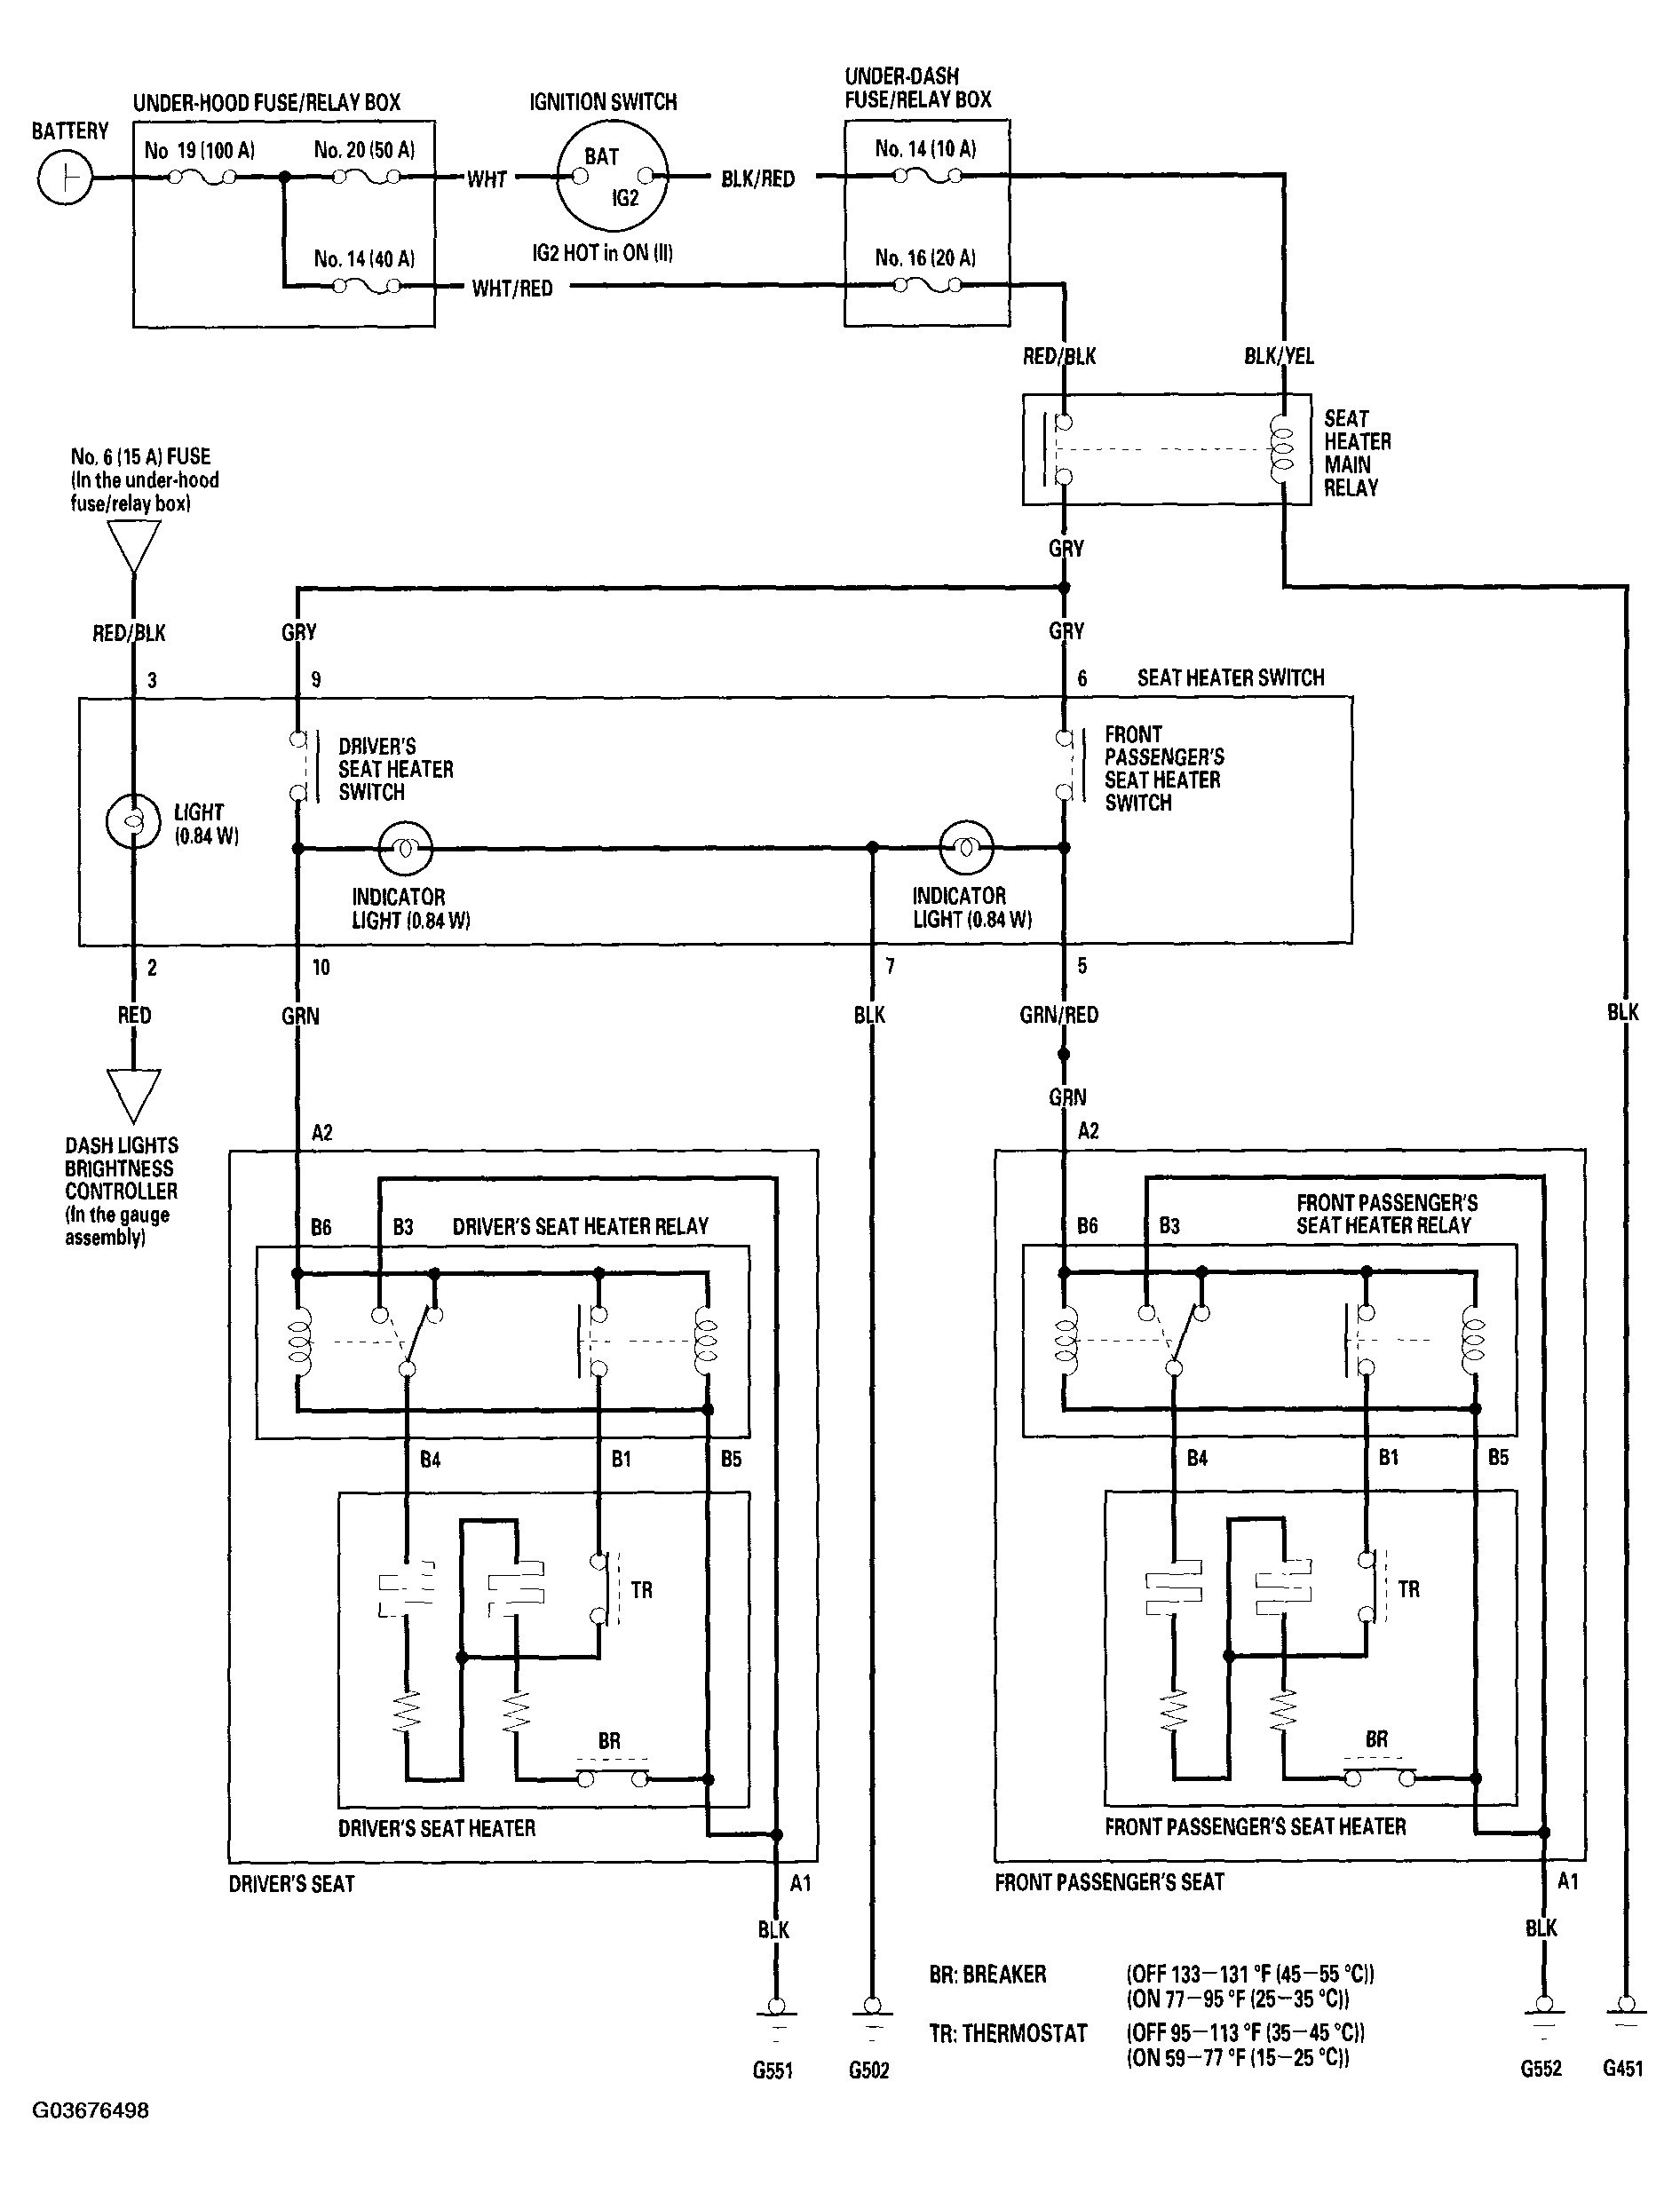 2001 honda 35 engine diagram information schematics wiring diagrams 94 Honda Accord Muffler